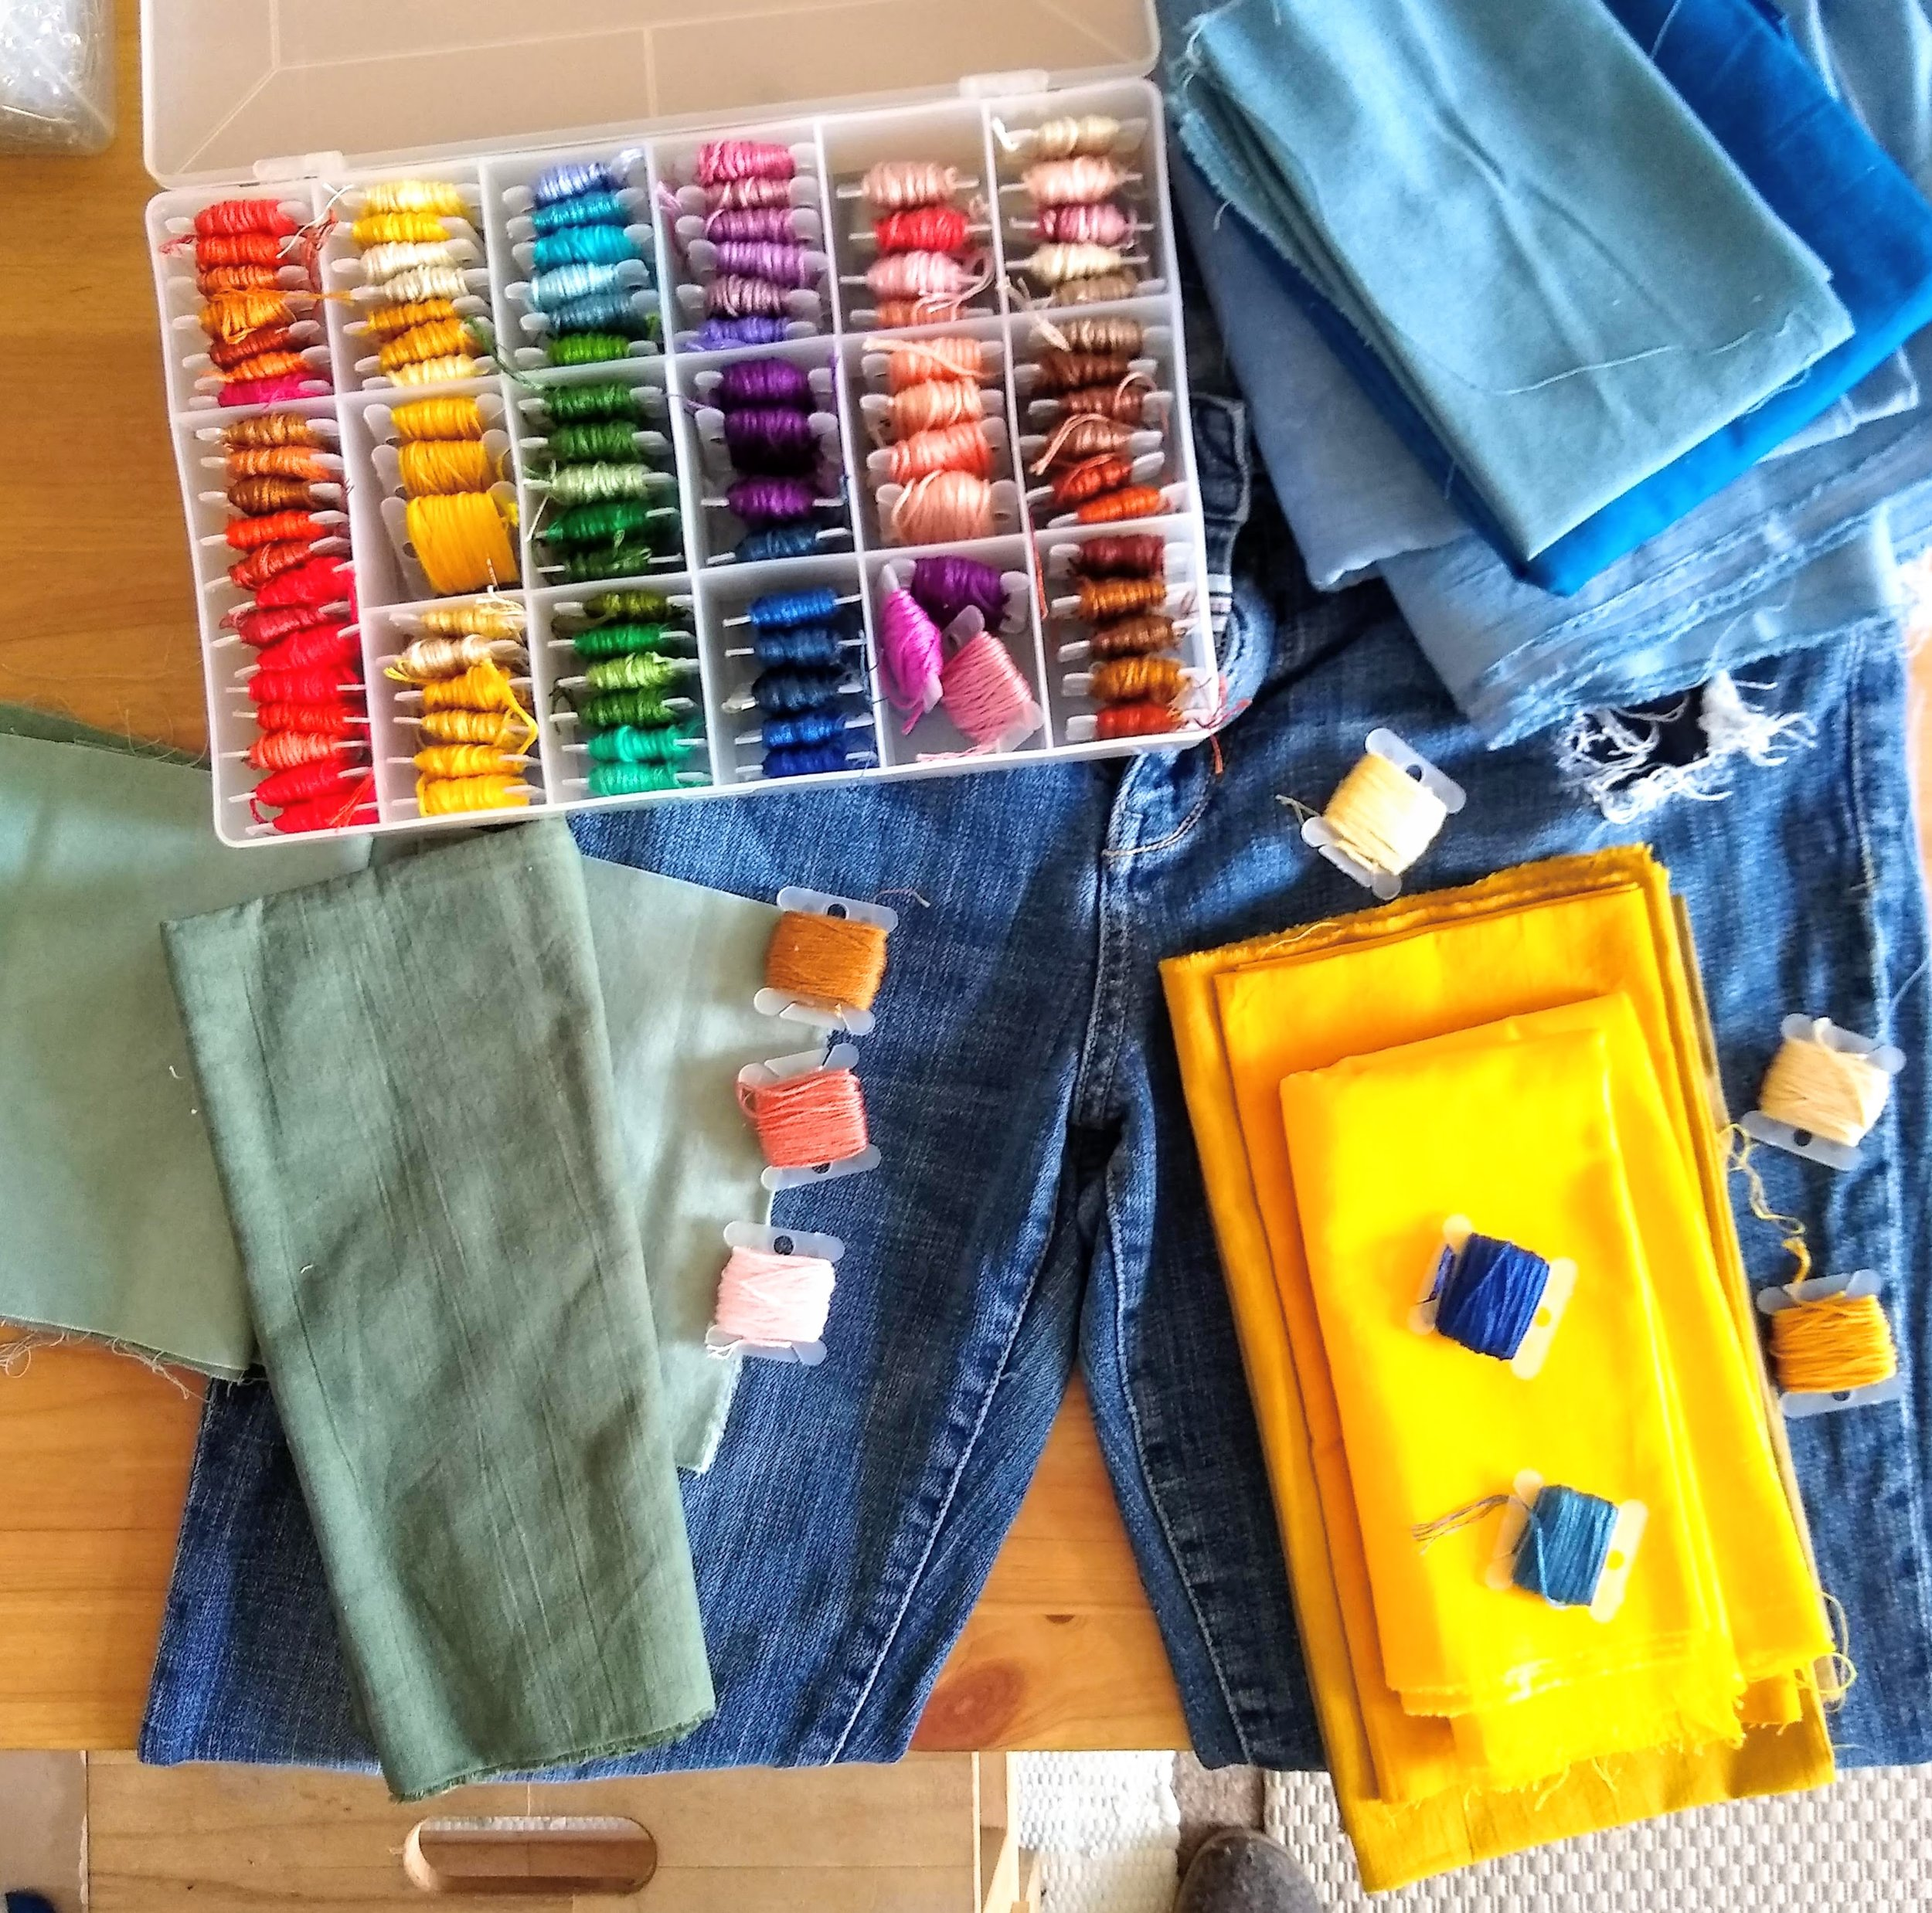 I am a big fan of taking out ALL the options and holding different options next to my mending project. Here I have a lot of hand dyed fabric that I set next to my garment to be mended and add my embroidery floss options to see what works well together.